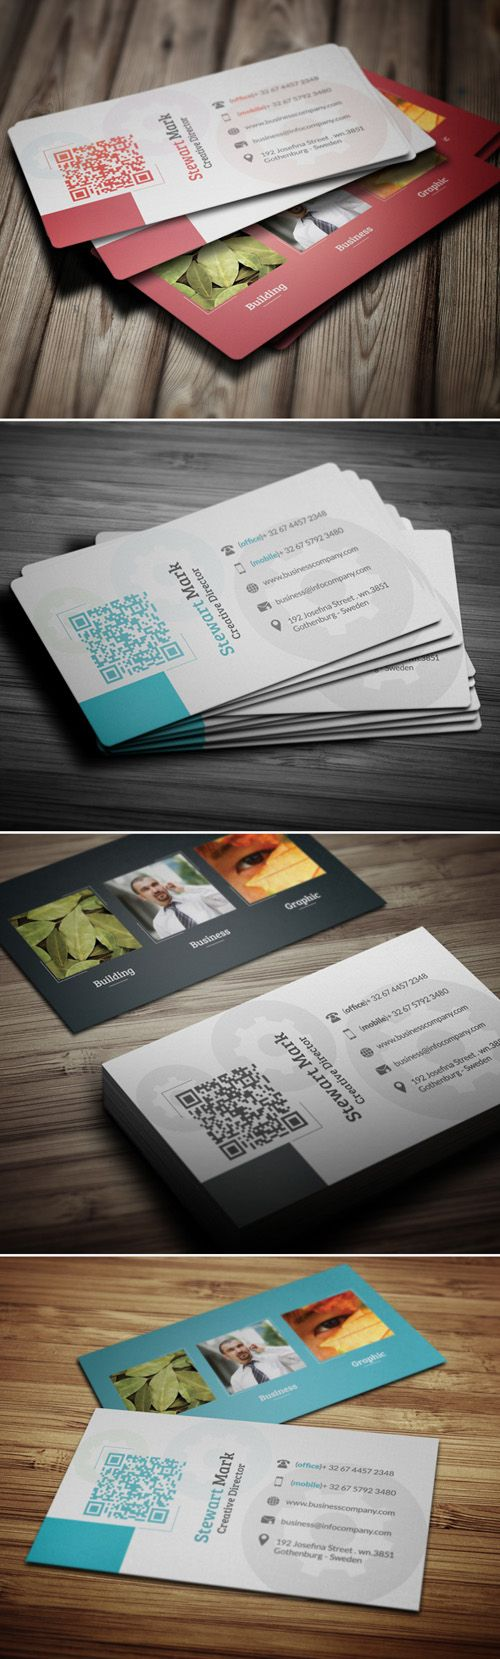 36 best Cool business cards images on Pinterest | Business cards ...